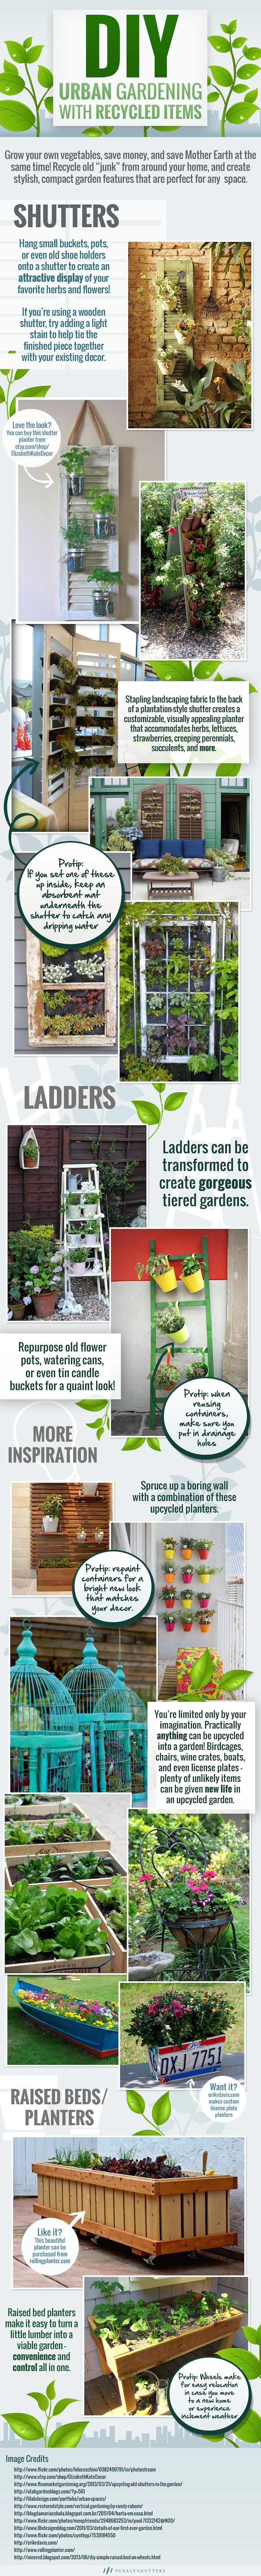 DIY Gardening Ideas with Recycled Items like shutters and ladders! [ infographic ]